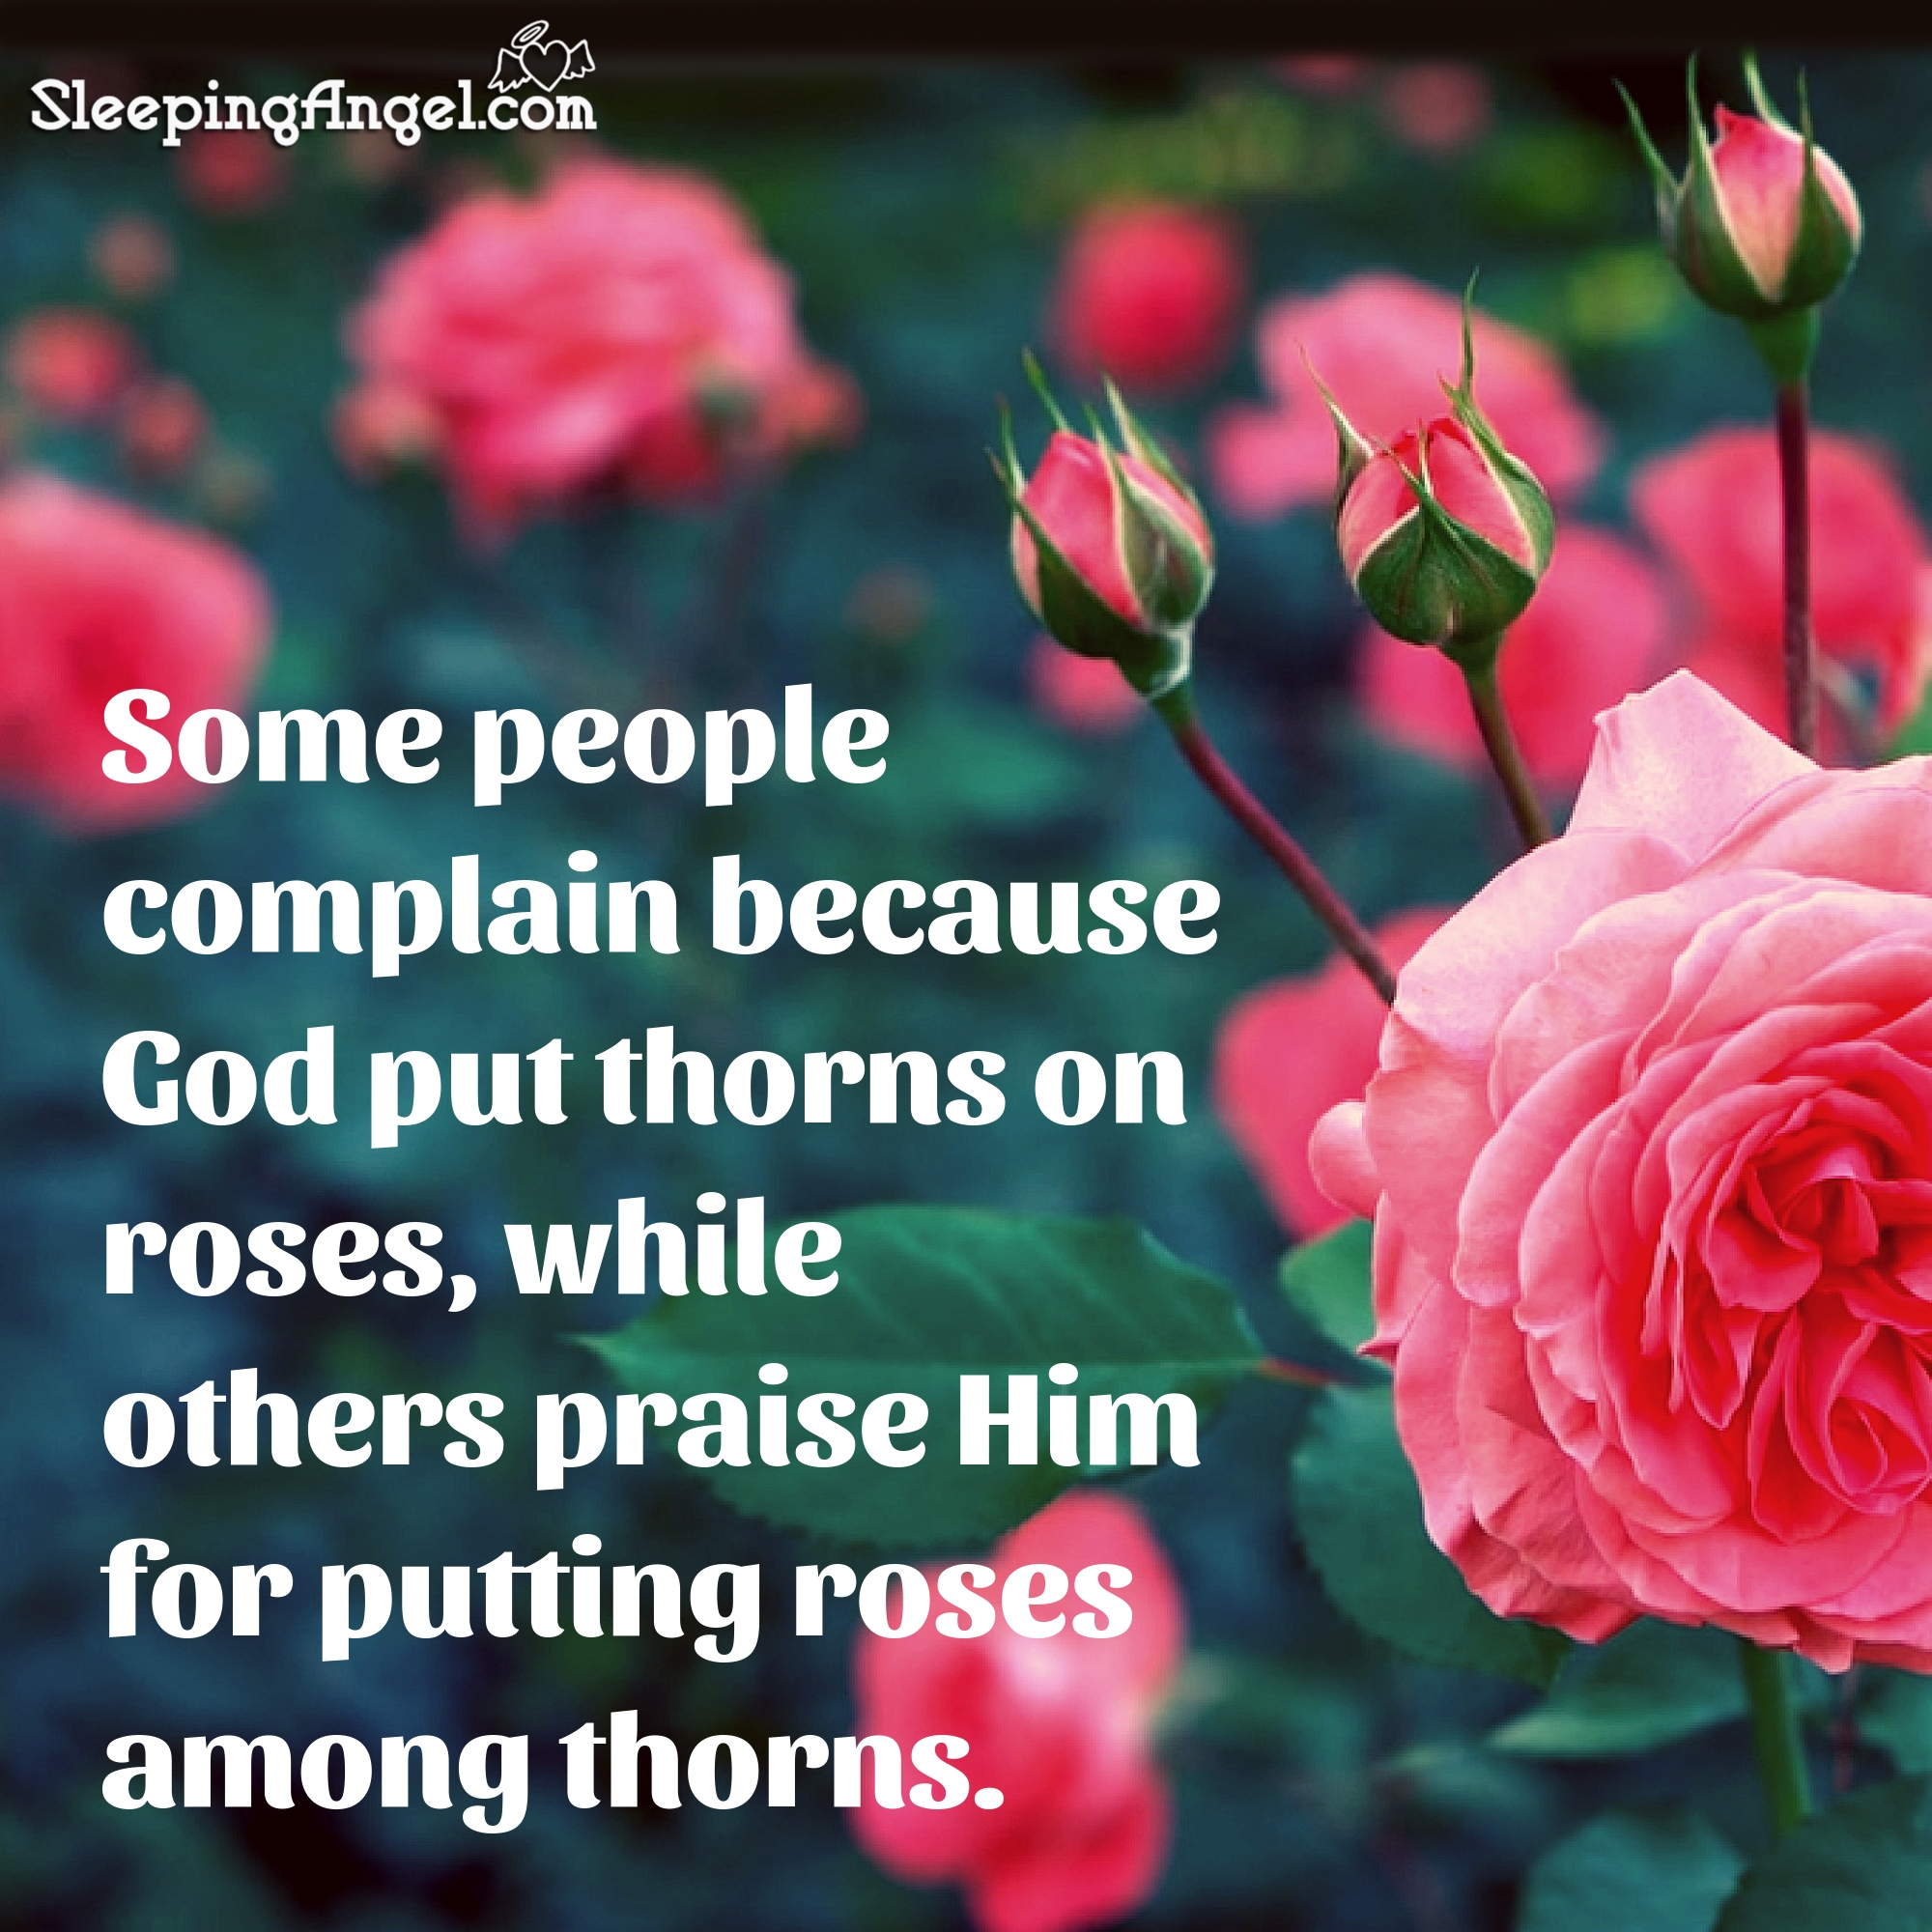 roses among thorns quote sleeping angel